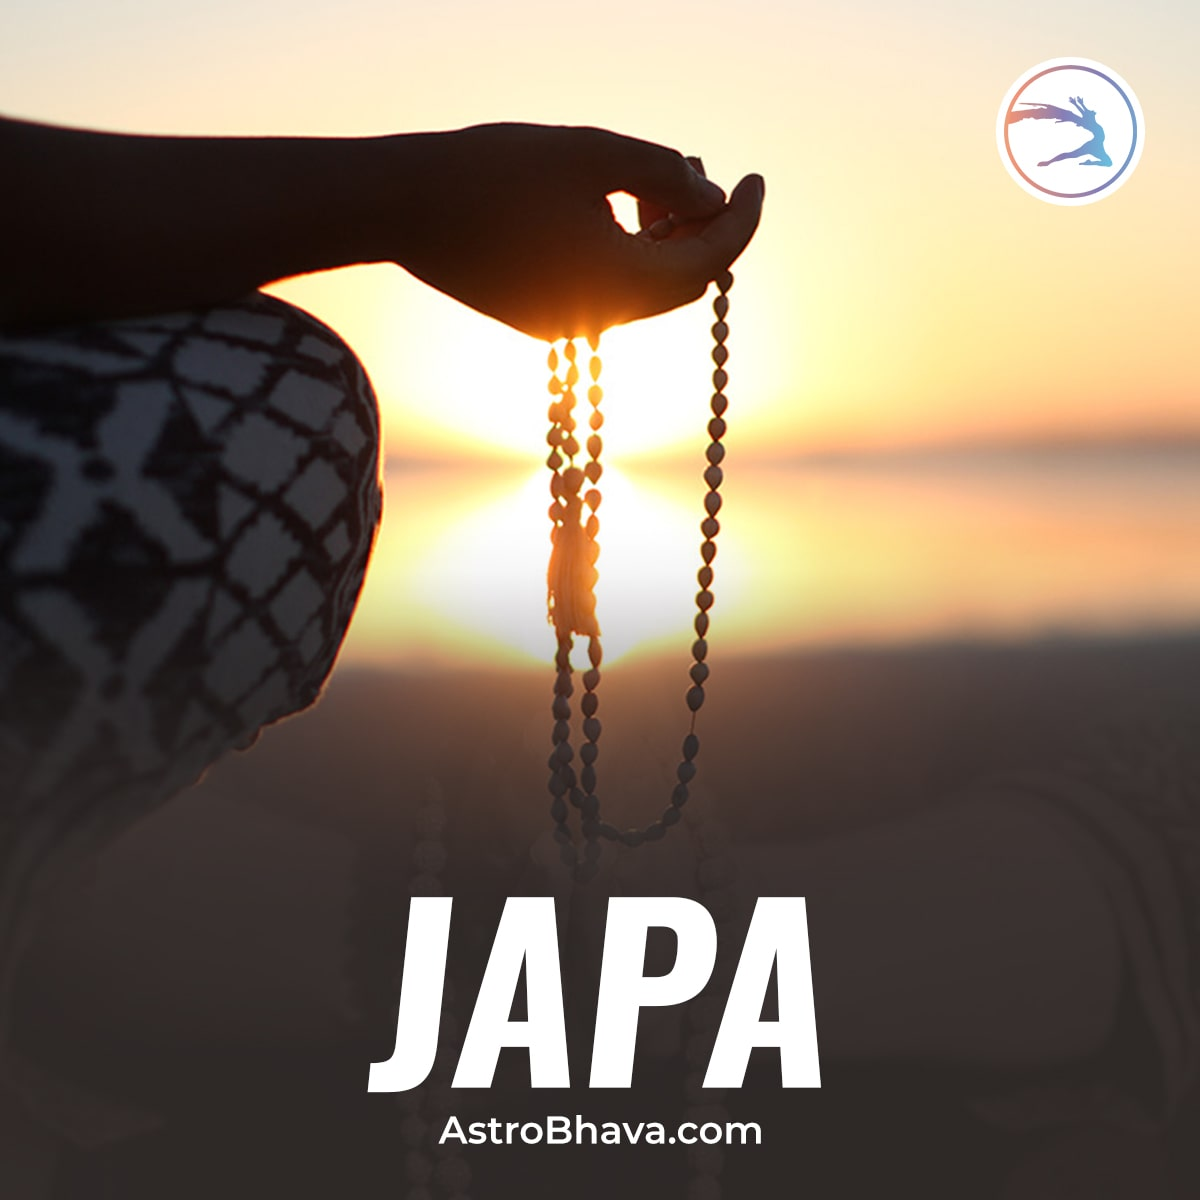 Japa - Ancient Method Of Communion To God Via Chants Of Mantra Or Divine Name From AstroBhava